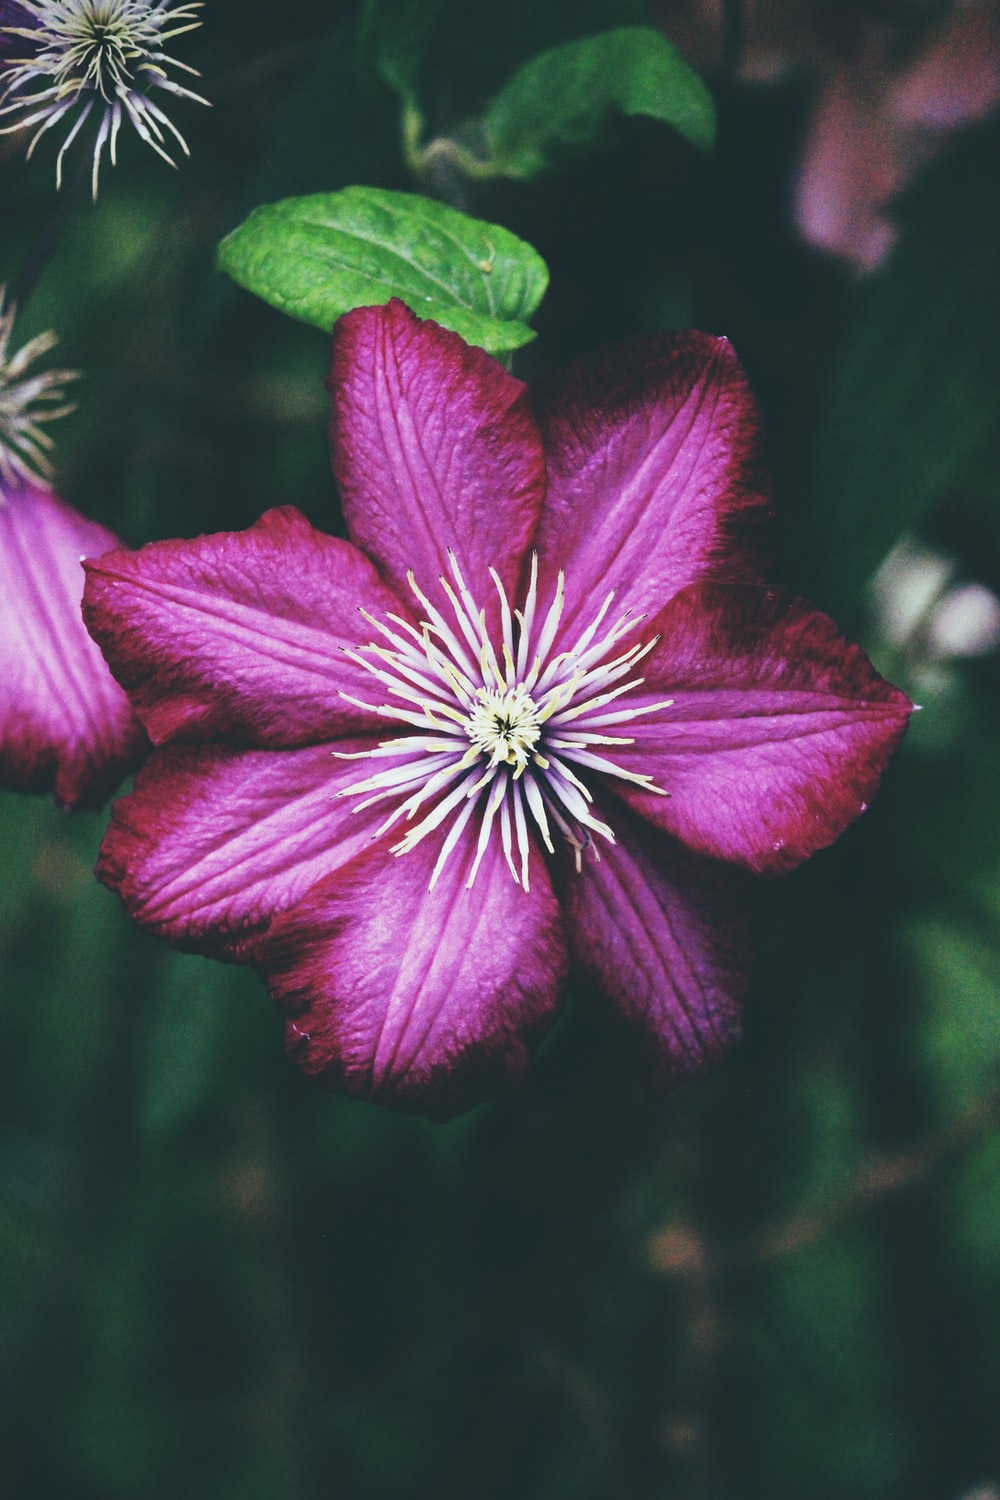 purple petaled flower with white pollen